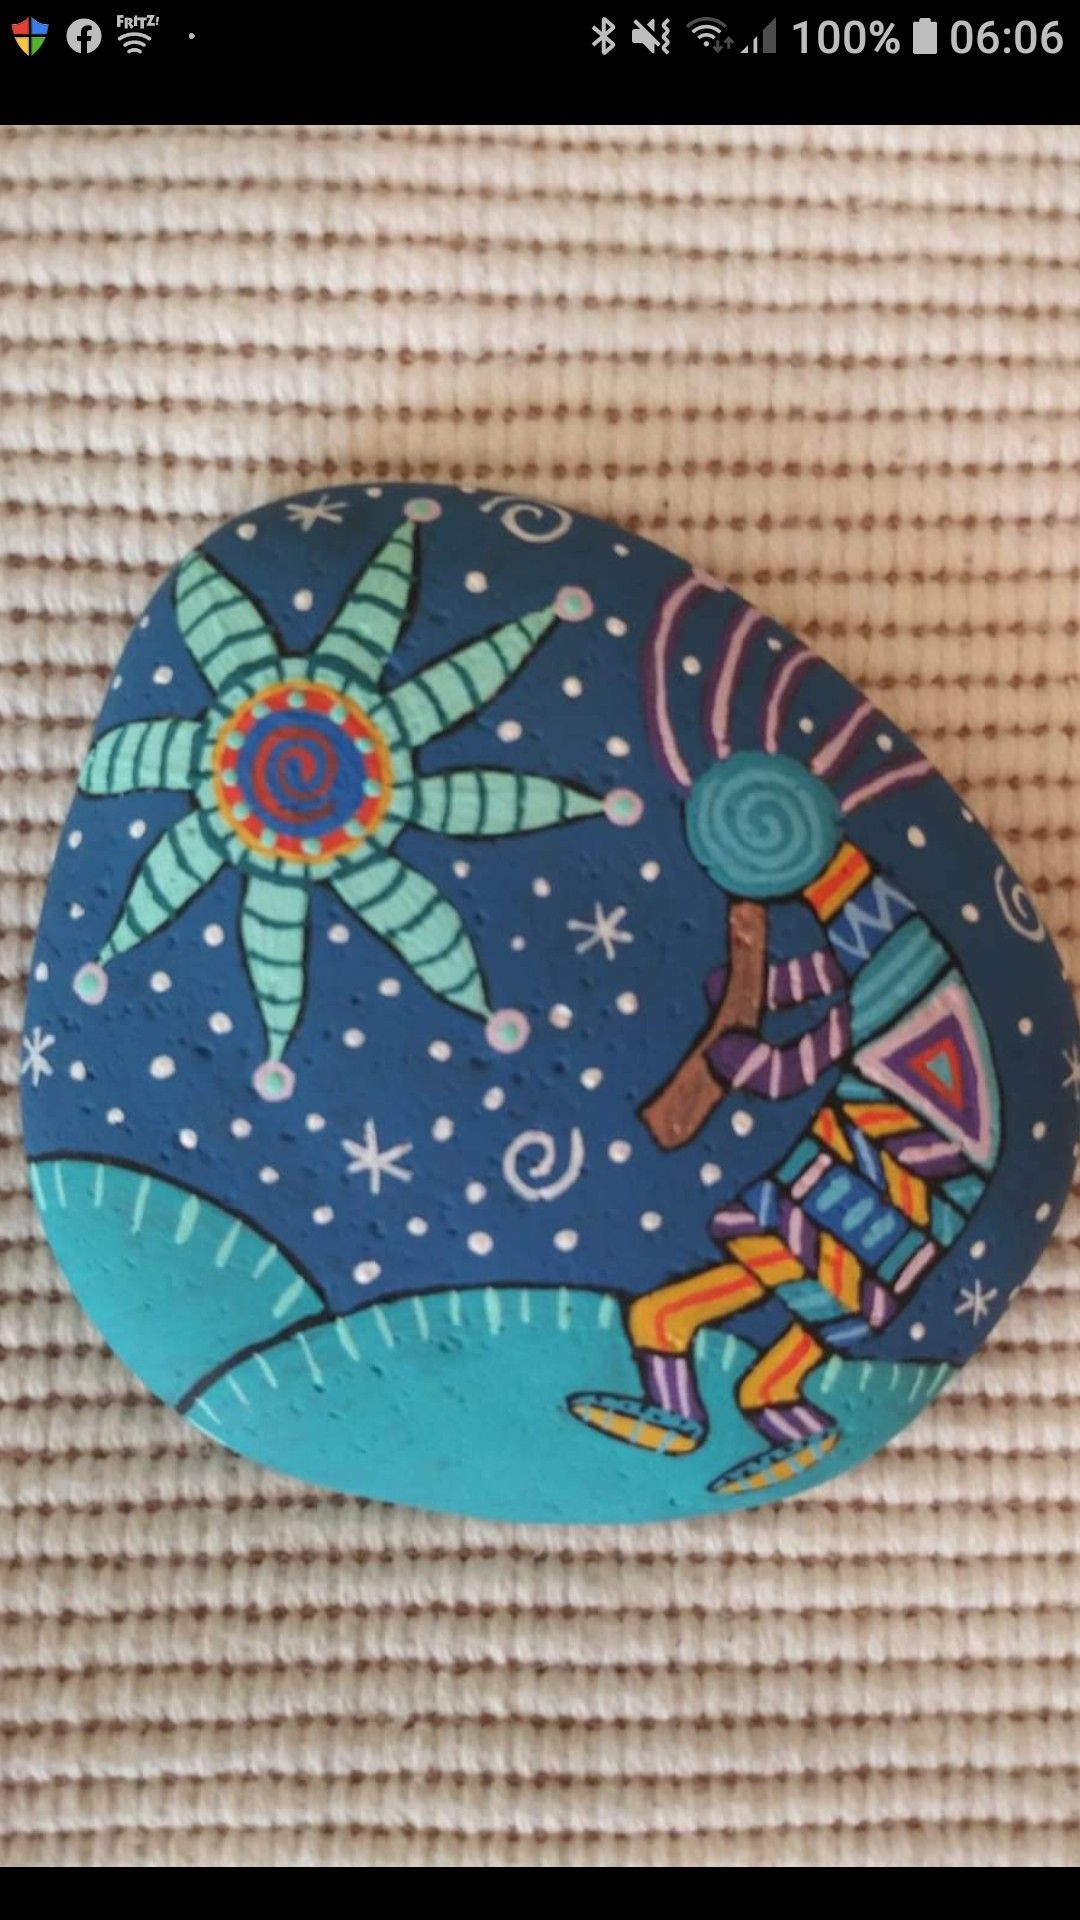 pin by bren coop on rocks in 2020 with images rock painting designs rock crafts painted rocks pinterest